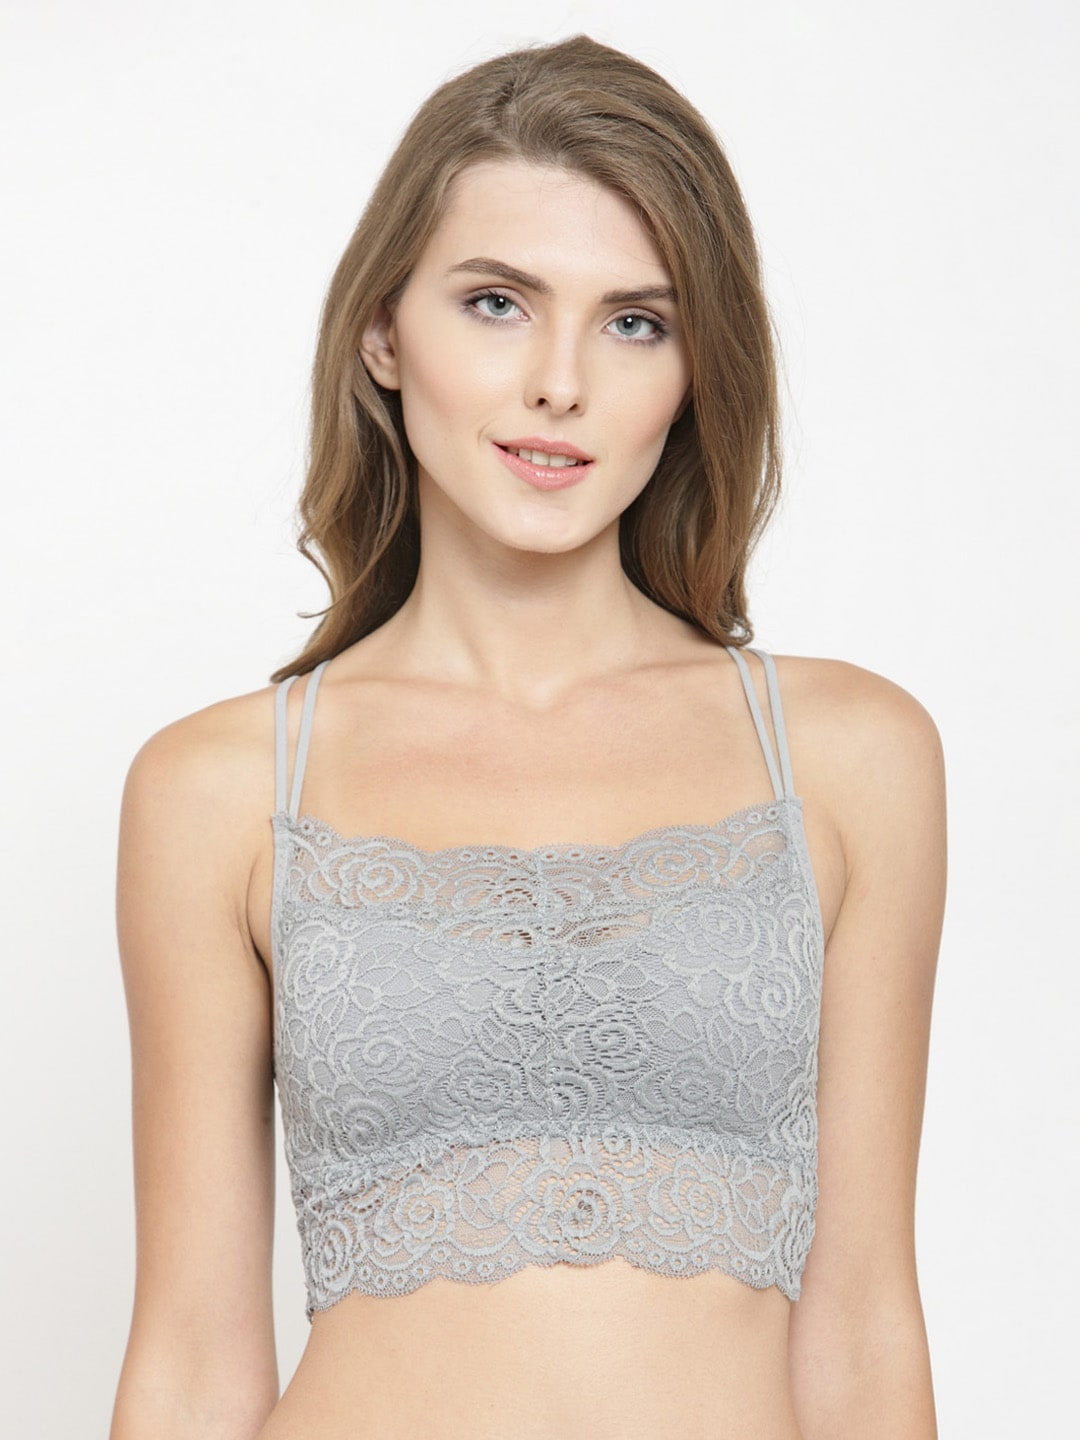 a65c416bf9d Bralette - Buy Stylish Bralettes online at best prices in India